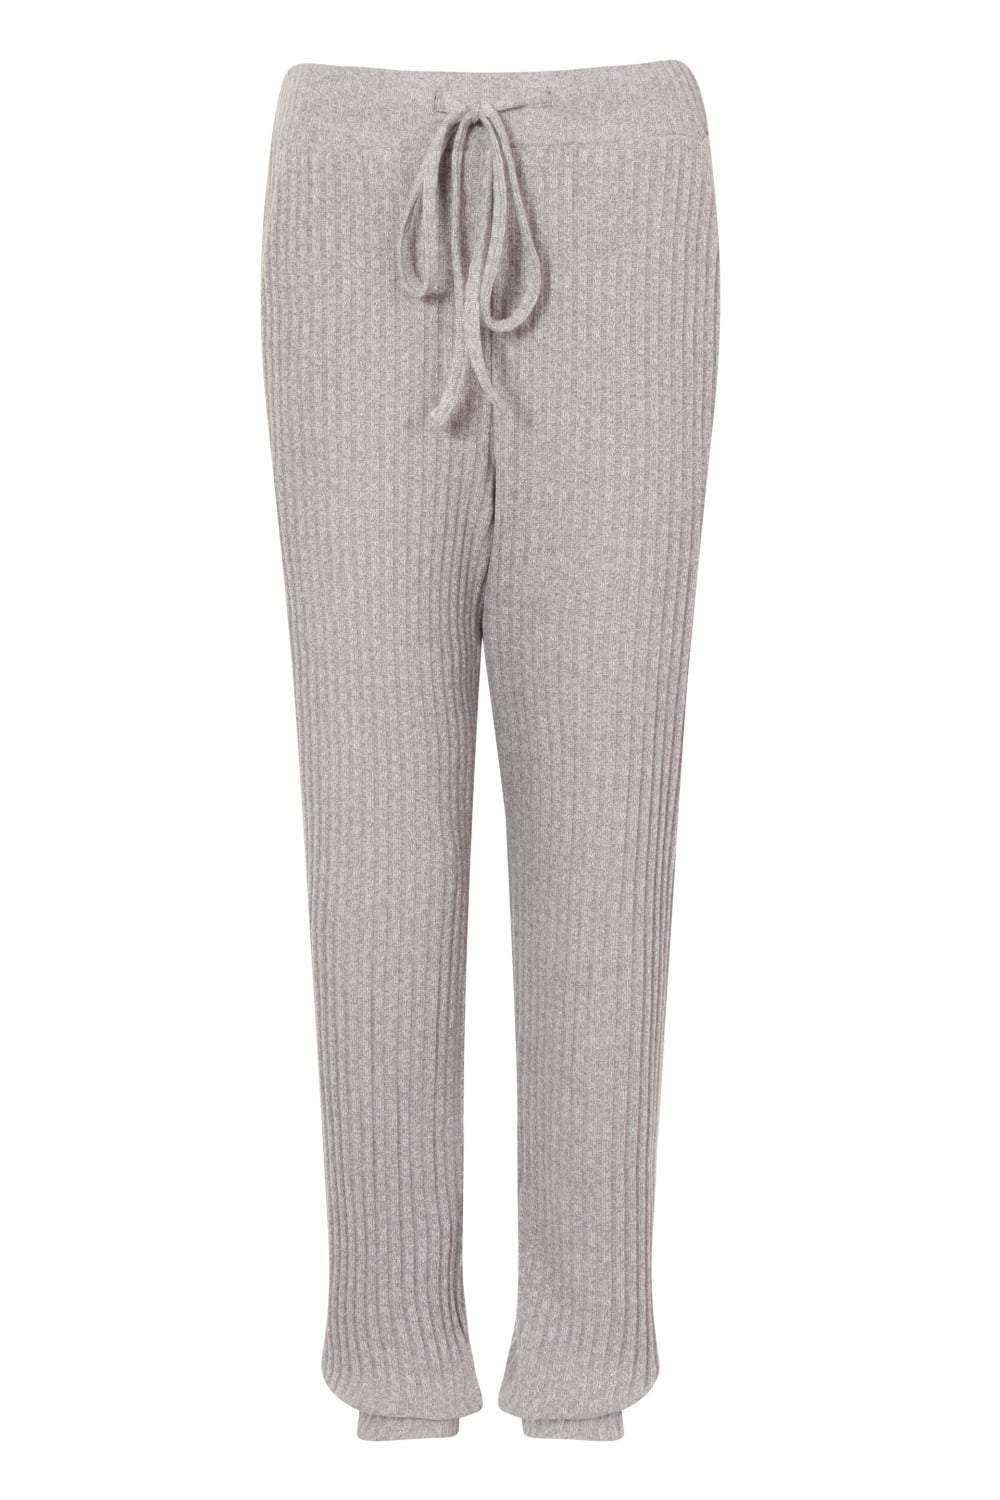 Grey Rib Knit High Waisted Cuff Joggers